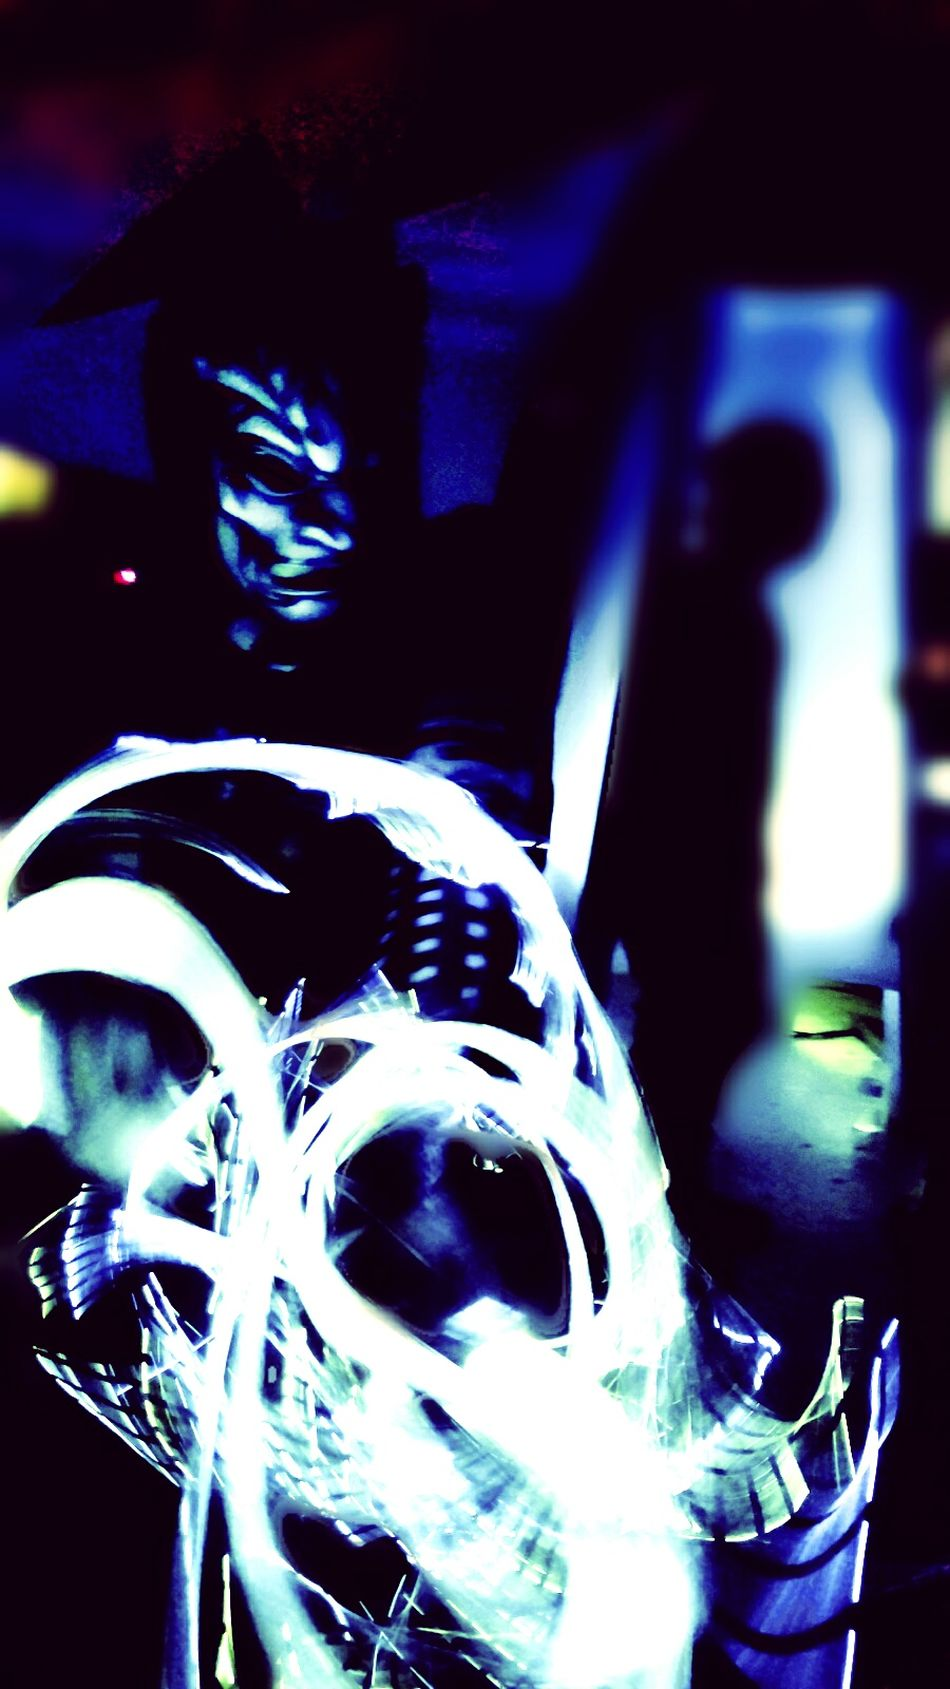 Light shows. Lights And Shadows Light And Shadow Lights And People People Lifestyles Nightlife . Indoors  Close-up Abstract Photooftheday Myphotography. Pattern, Texture, Shape And Form LoveMyWork LIFE. Photography. Beautiful. Dark Happiness Growth Mywork Artistic Artistic Expression Artofvisuals